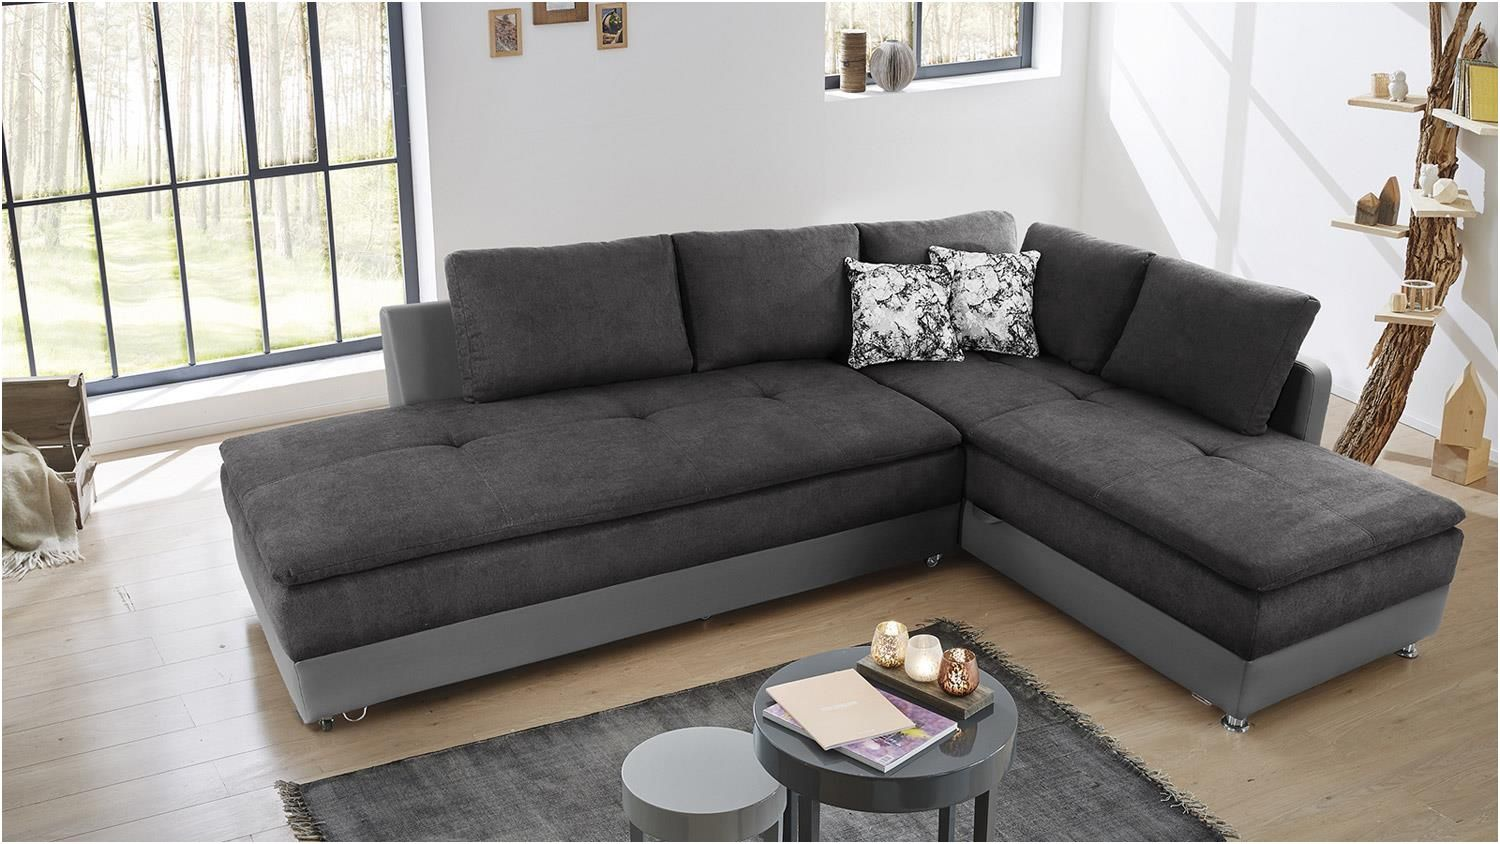 Trend Eckcouch Poco Home Home Decor Couch